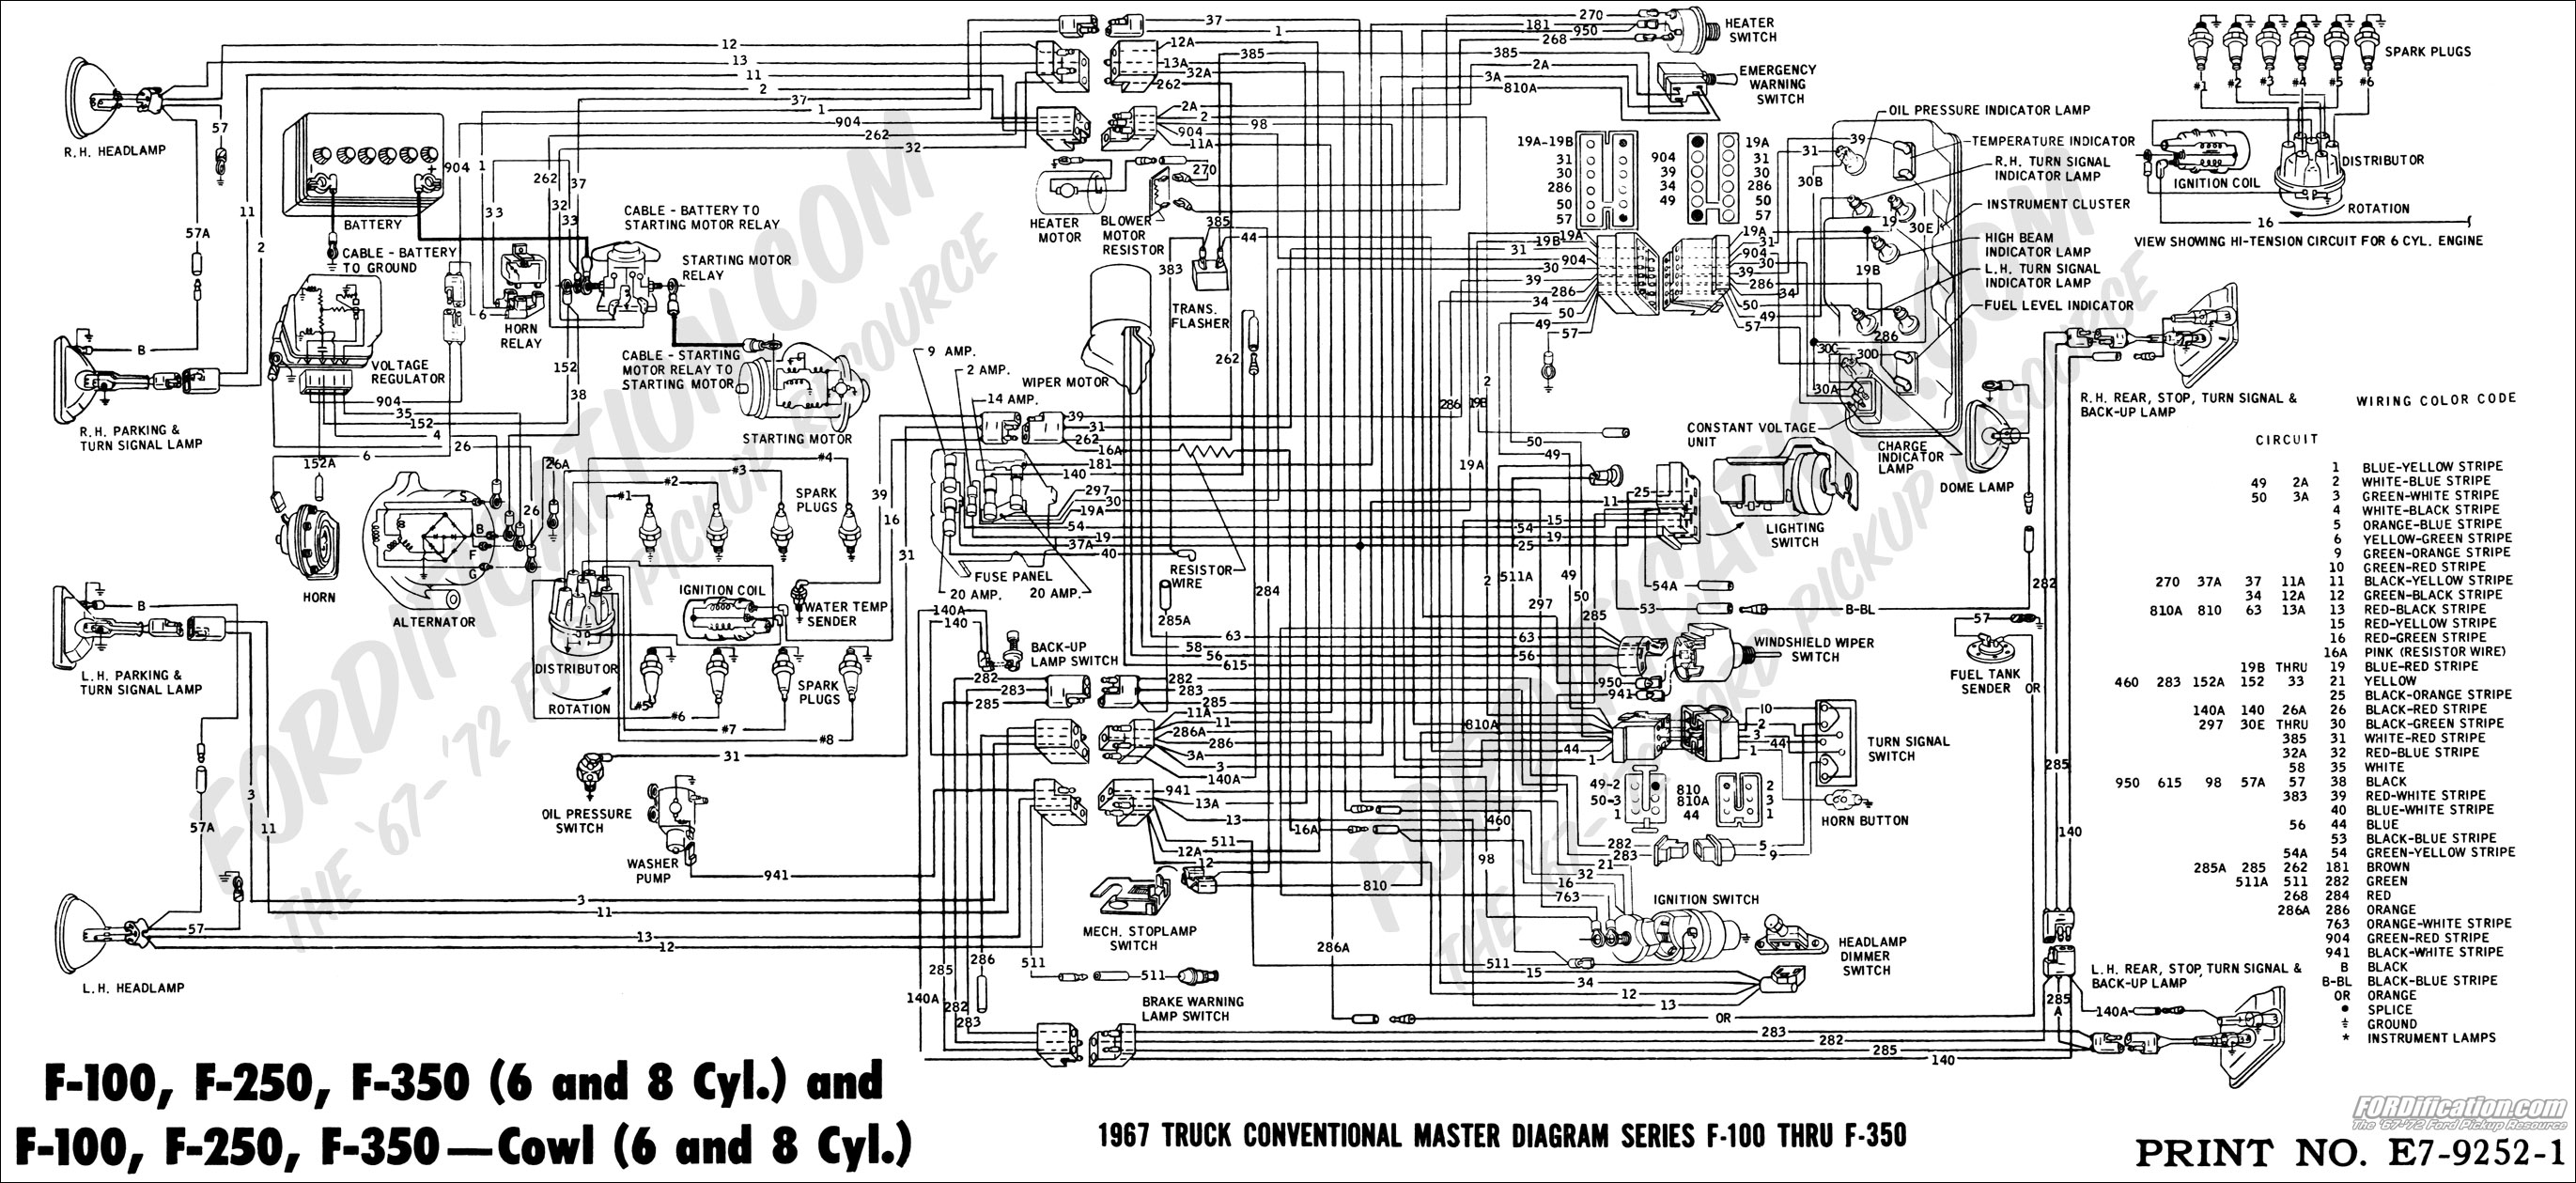 67masterdiagram ford truck technical drawings and schematics section h wiring 1991 ford f150 alternator wiring diagram at webbmarketing.co